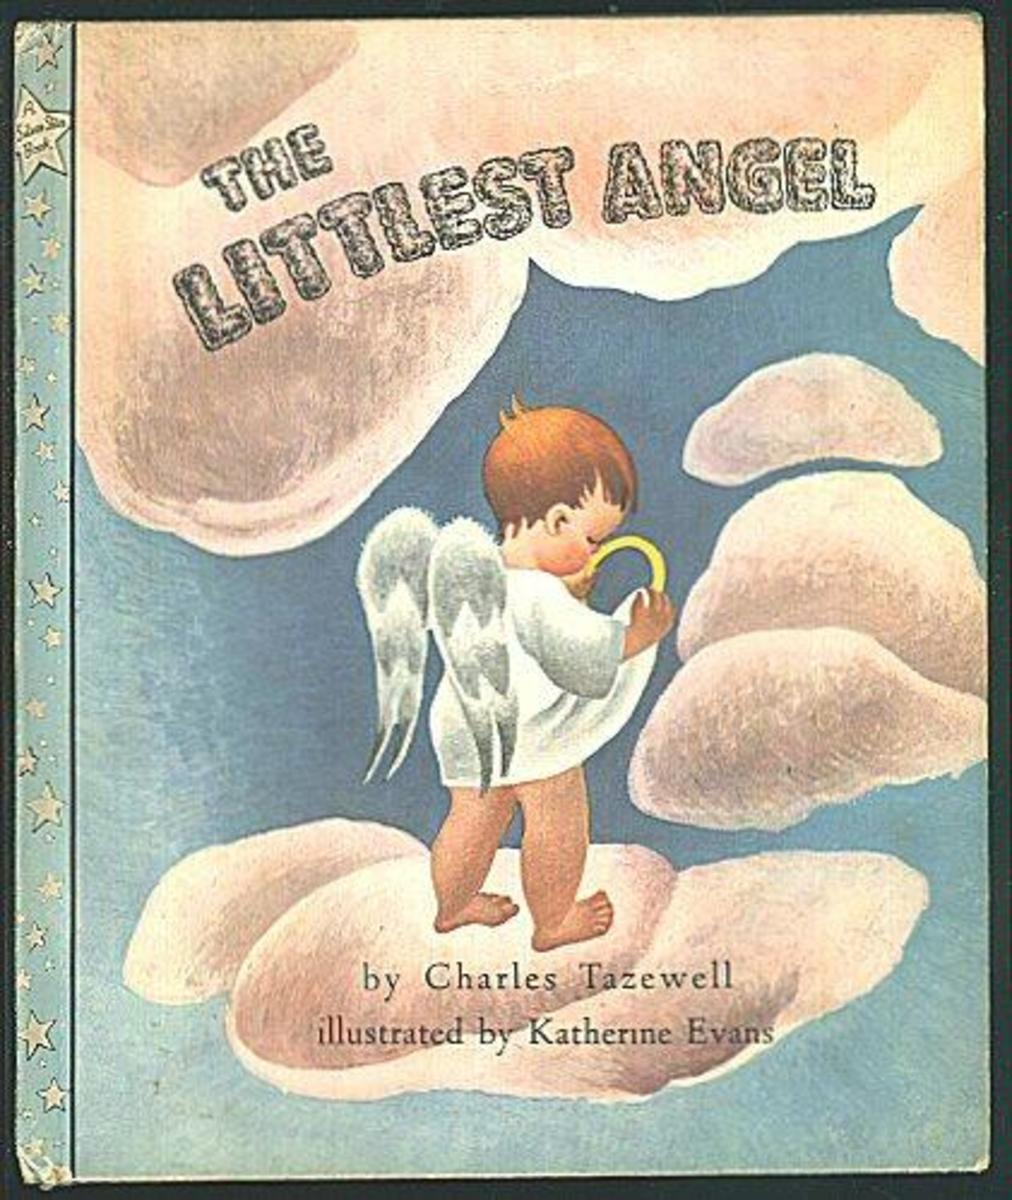 1946 Cover. Illustrated by Katherine Evans, published by Children's Press, Chicago. (ASIN: B000NZBCQ8)